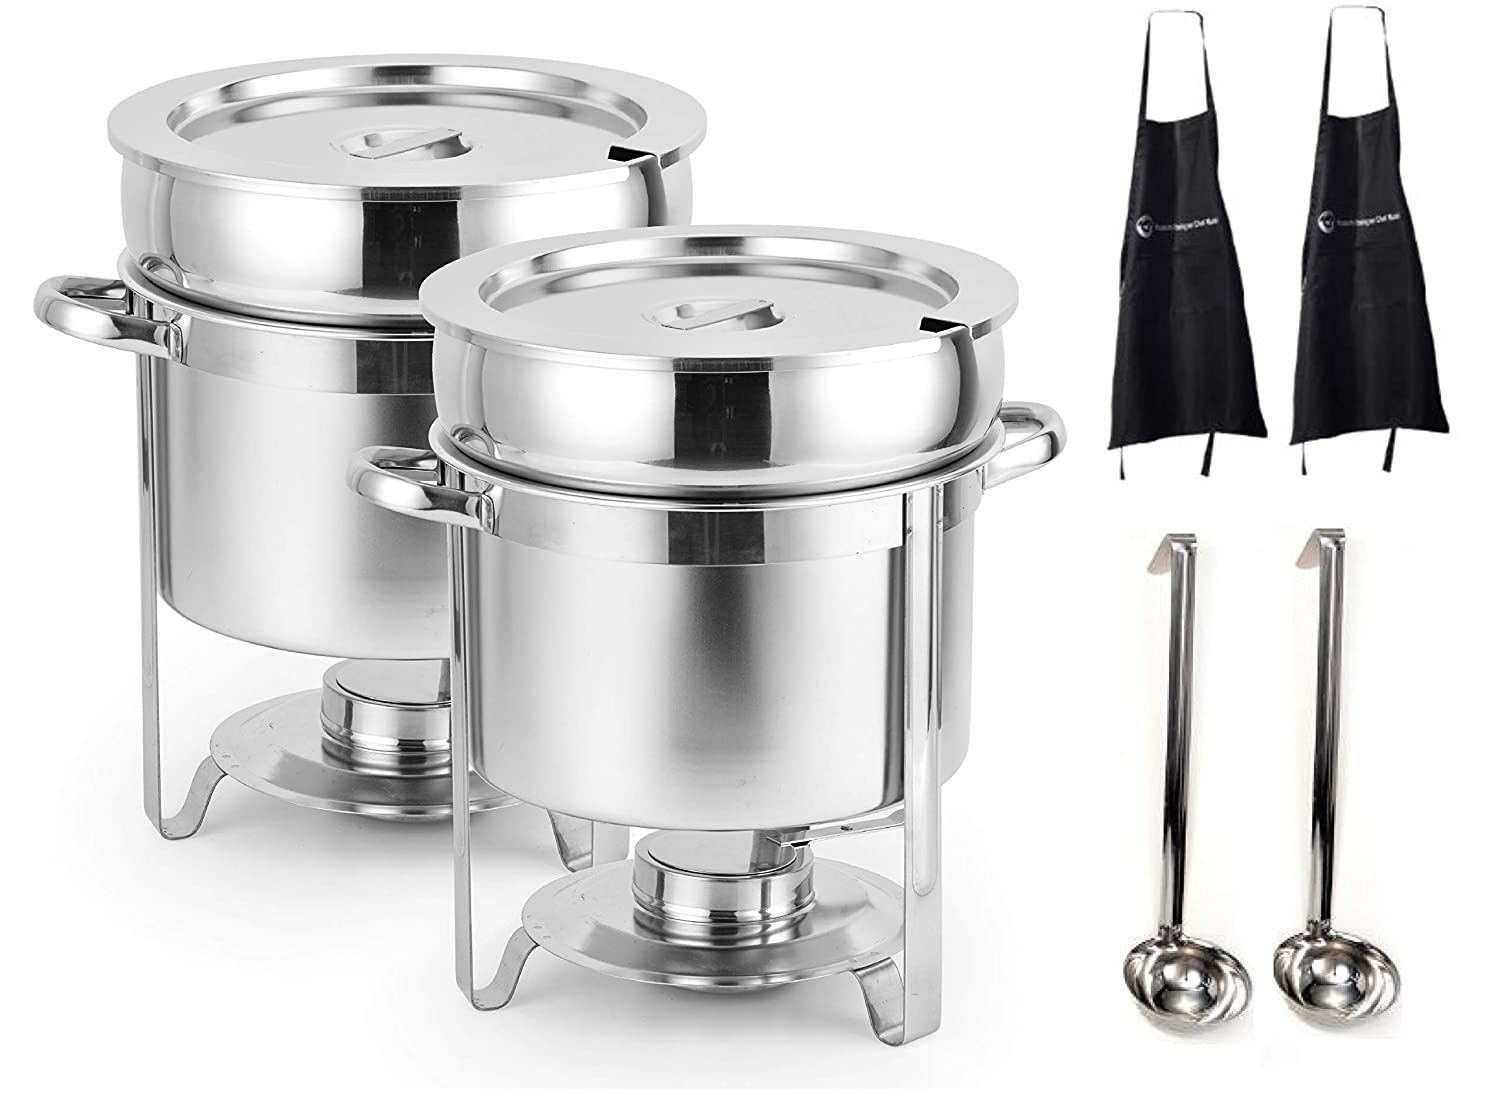 [Set of 2] 7 Qt Marmite Soup Chafer with 6 Oz ladelStainless Steel Buffet Set Warmer for Any Event or Party - Commercial Grade